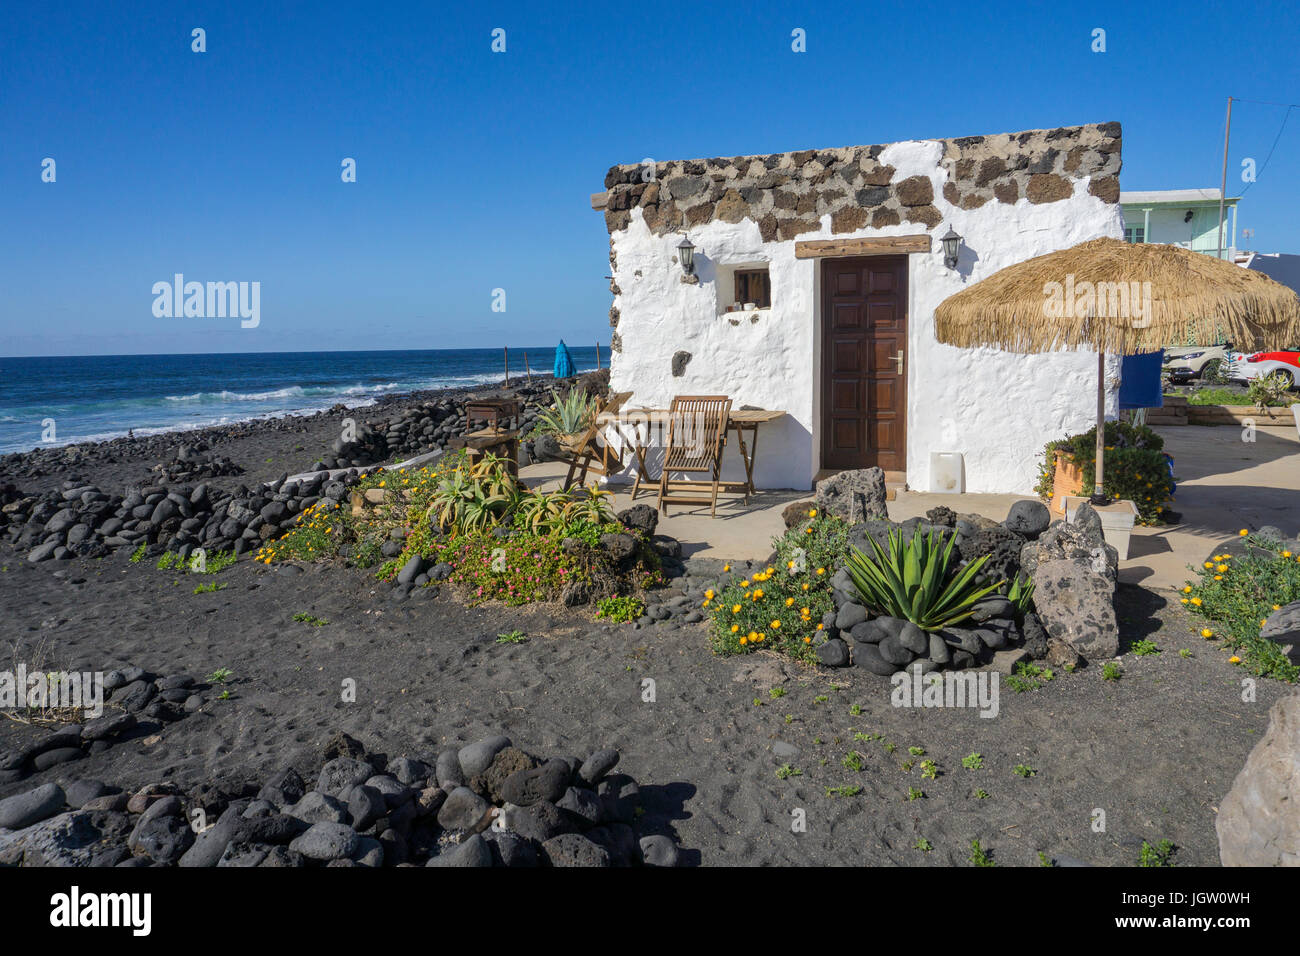 Small fishing house at the volcanic pebble beach, fishing village El Golfo, Lanzarote island, Canary islands, Spain, Stock Photo